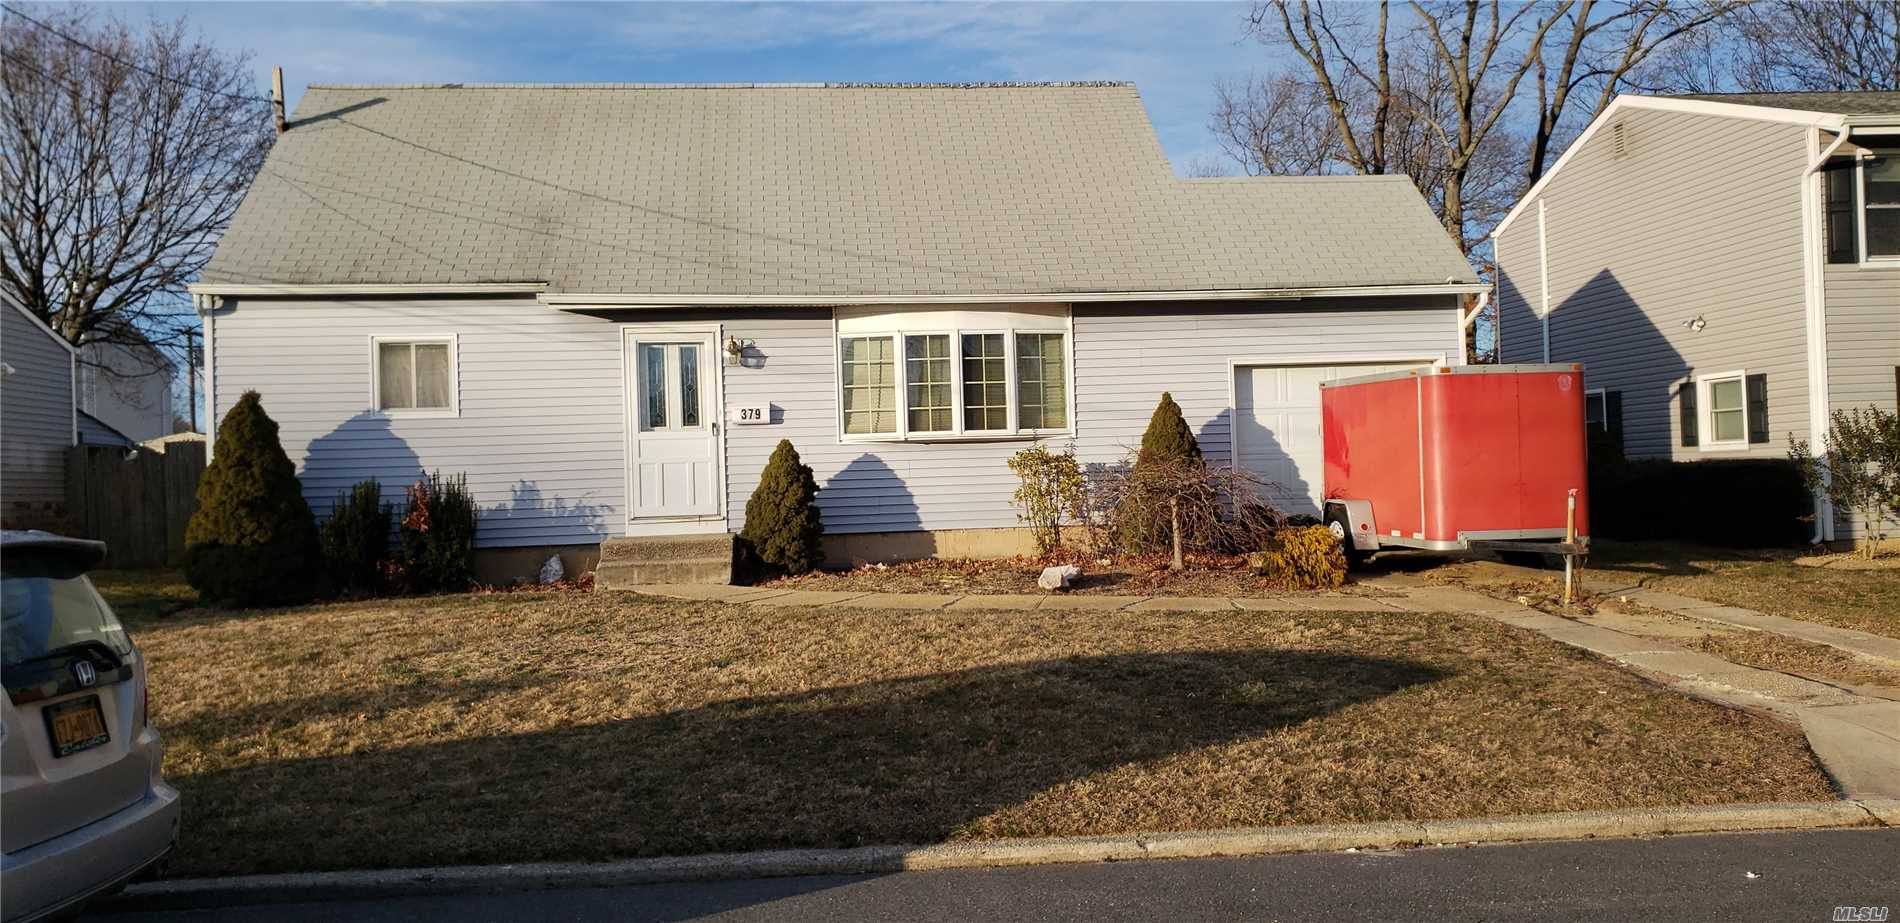 The Possibilities Are Endless In This Spacious Cape! Terrific Room Sizes, Plenty Of Storage, Gas Heat, Just Needs Finishing Touches! Plenty Of Value Throughout...Terrific Opportunity!